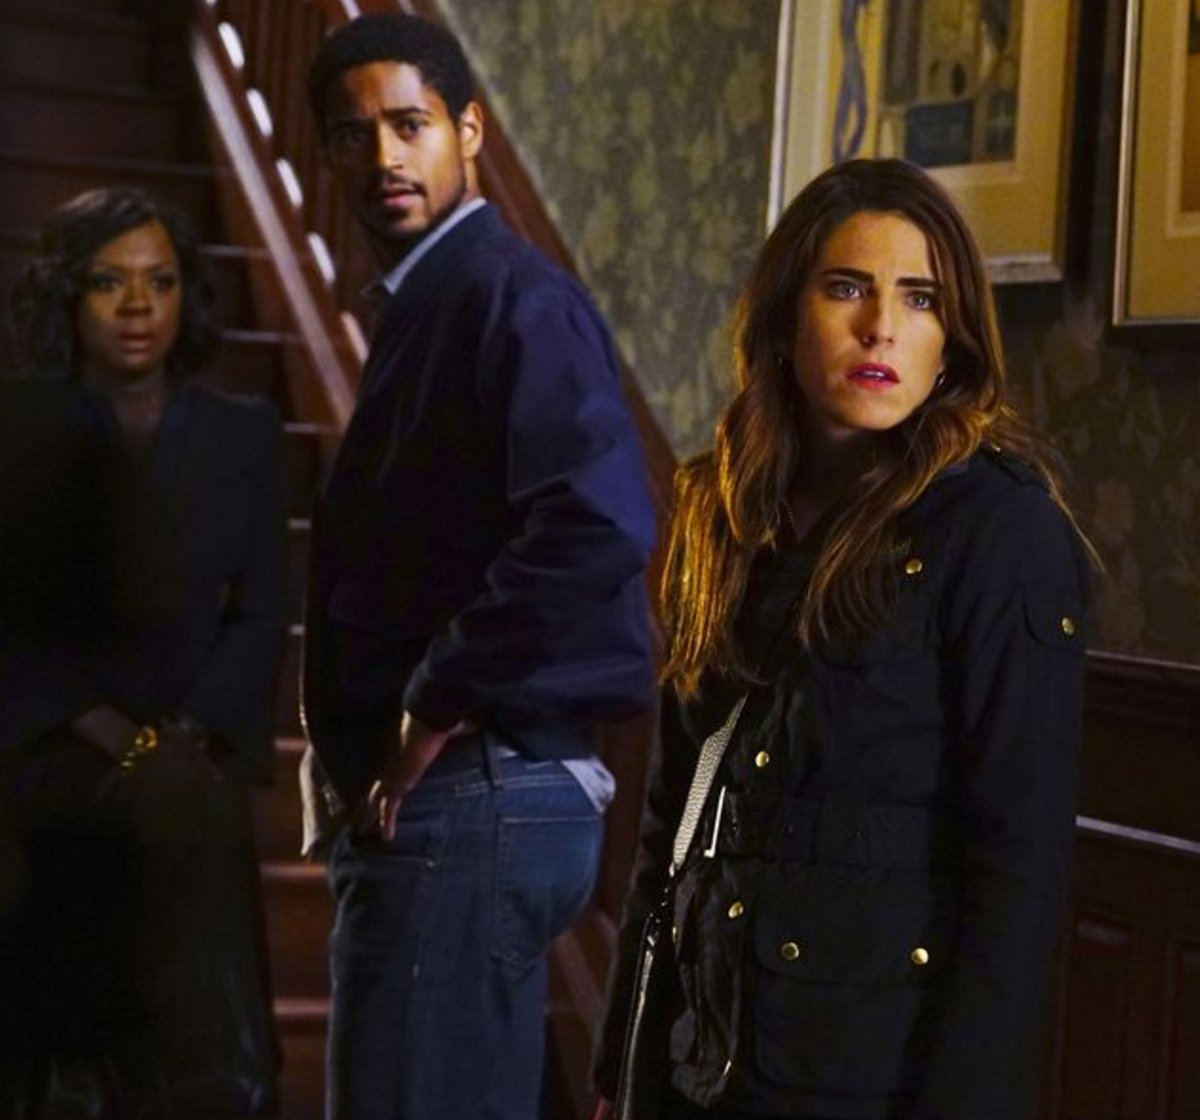 The thing about secrets, they never stay secrets for long ... #HTGAWM